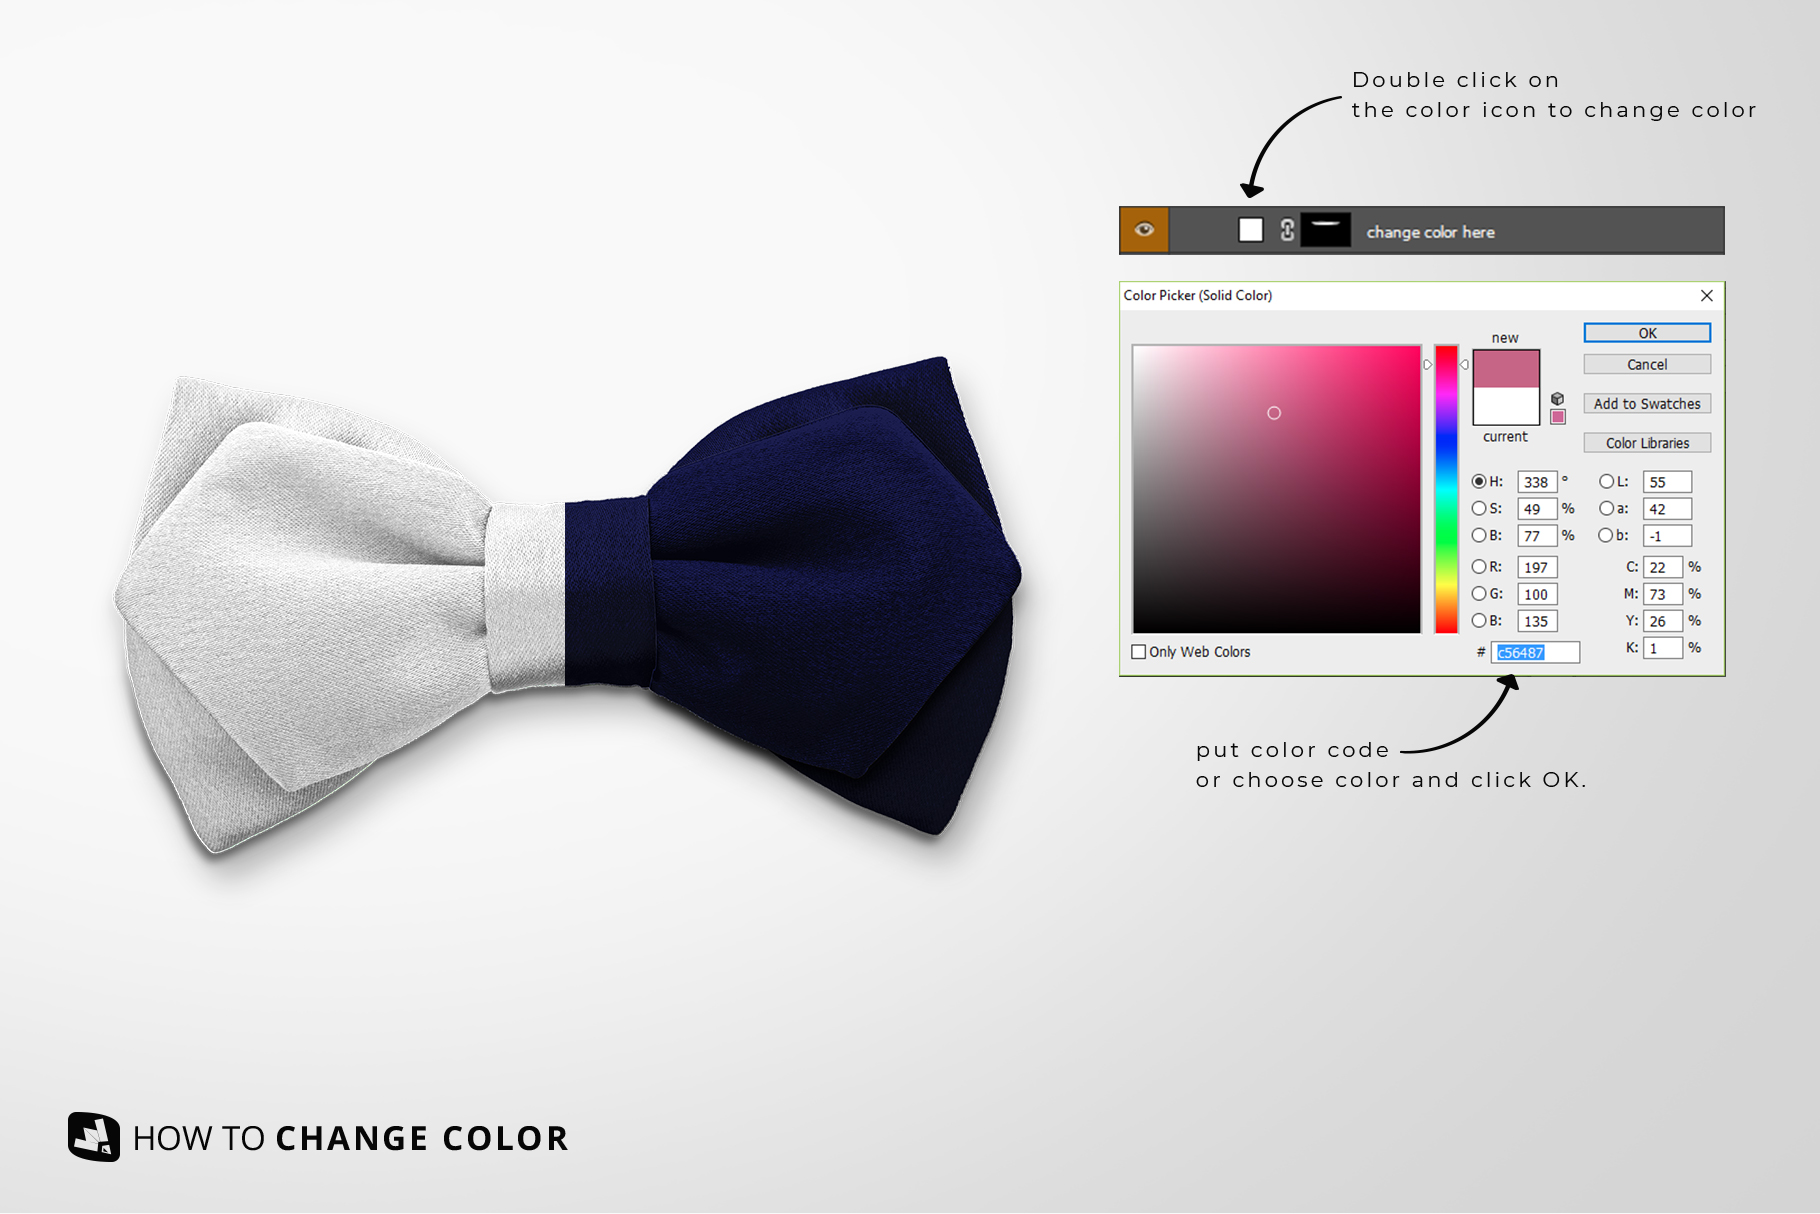 change color of the two-ply bow tie mockup